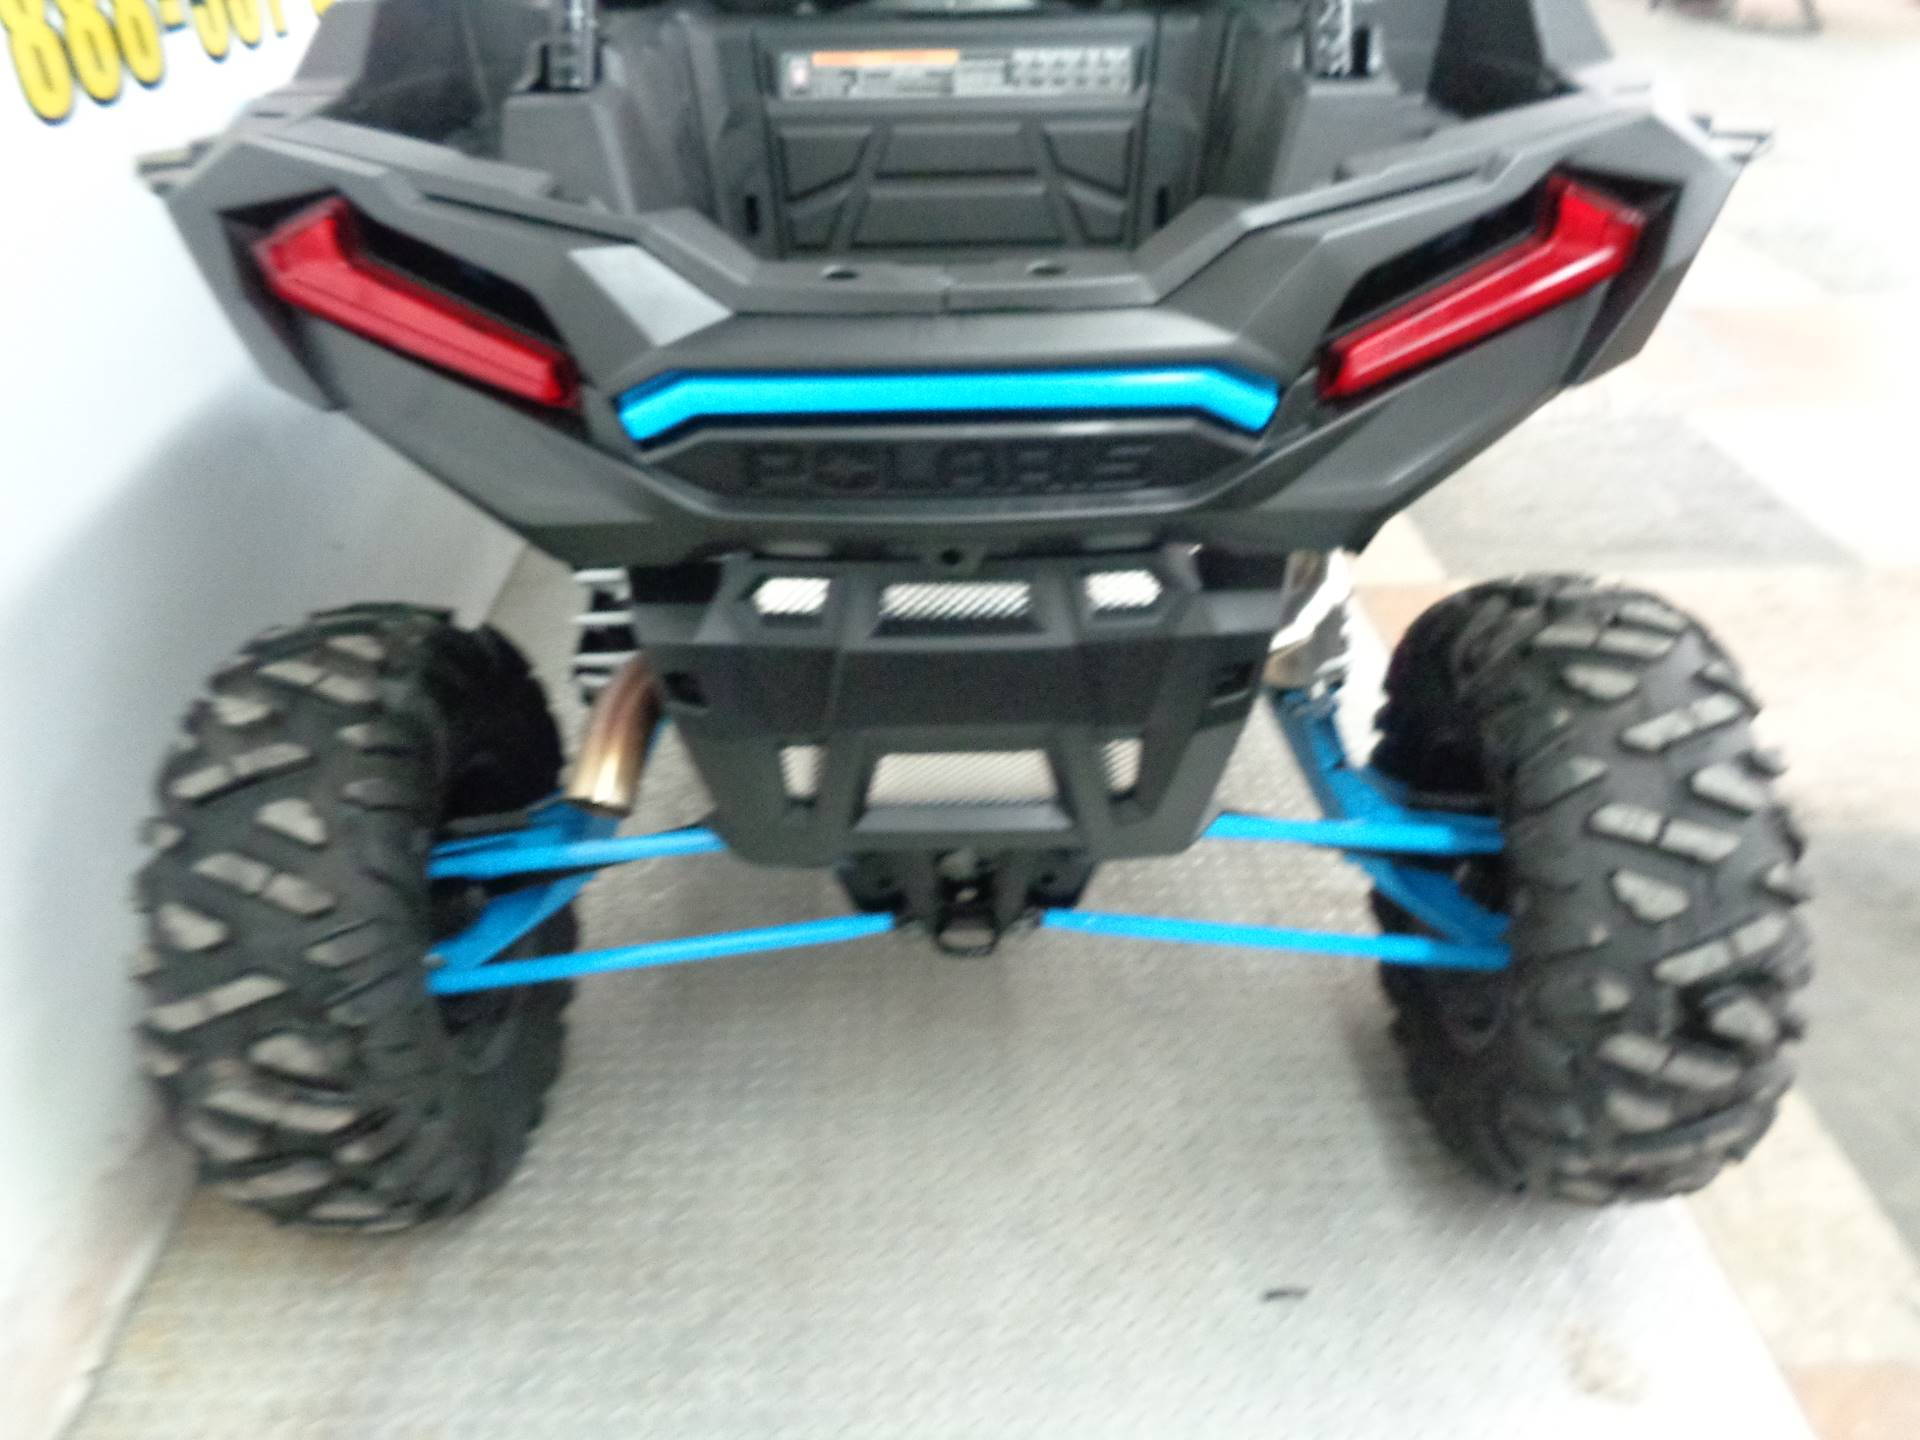 2019 Polaris RZR XP 1000 in Tulsa, Oklahoma - Photo 9